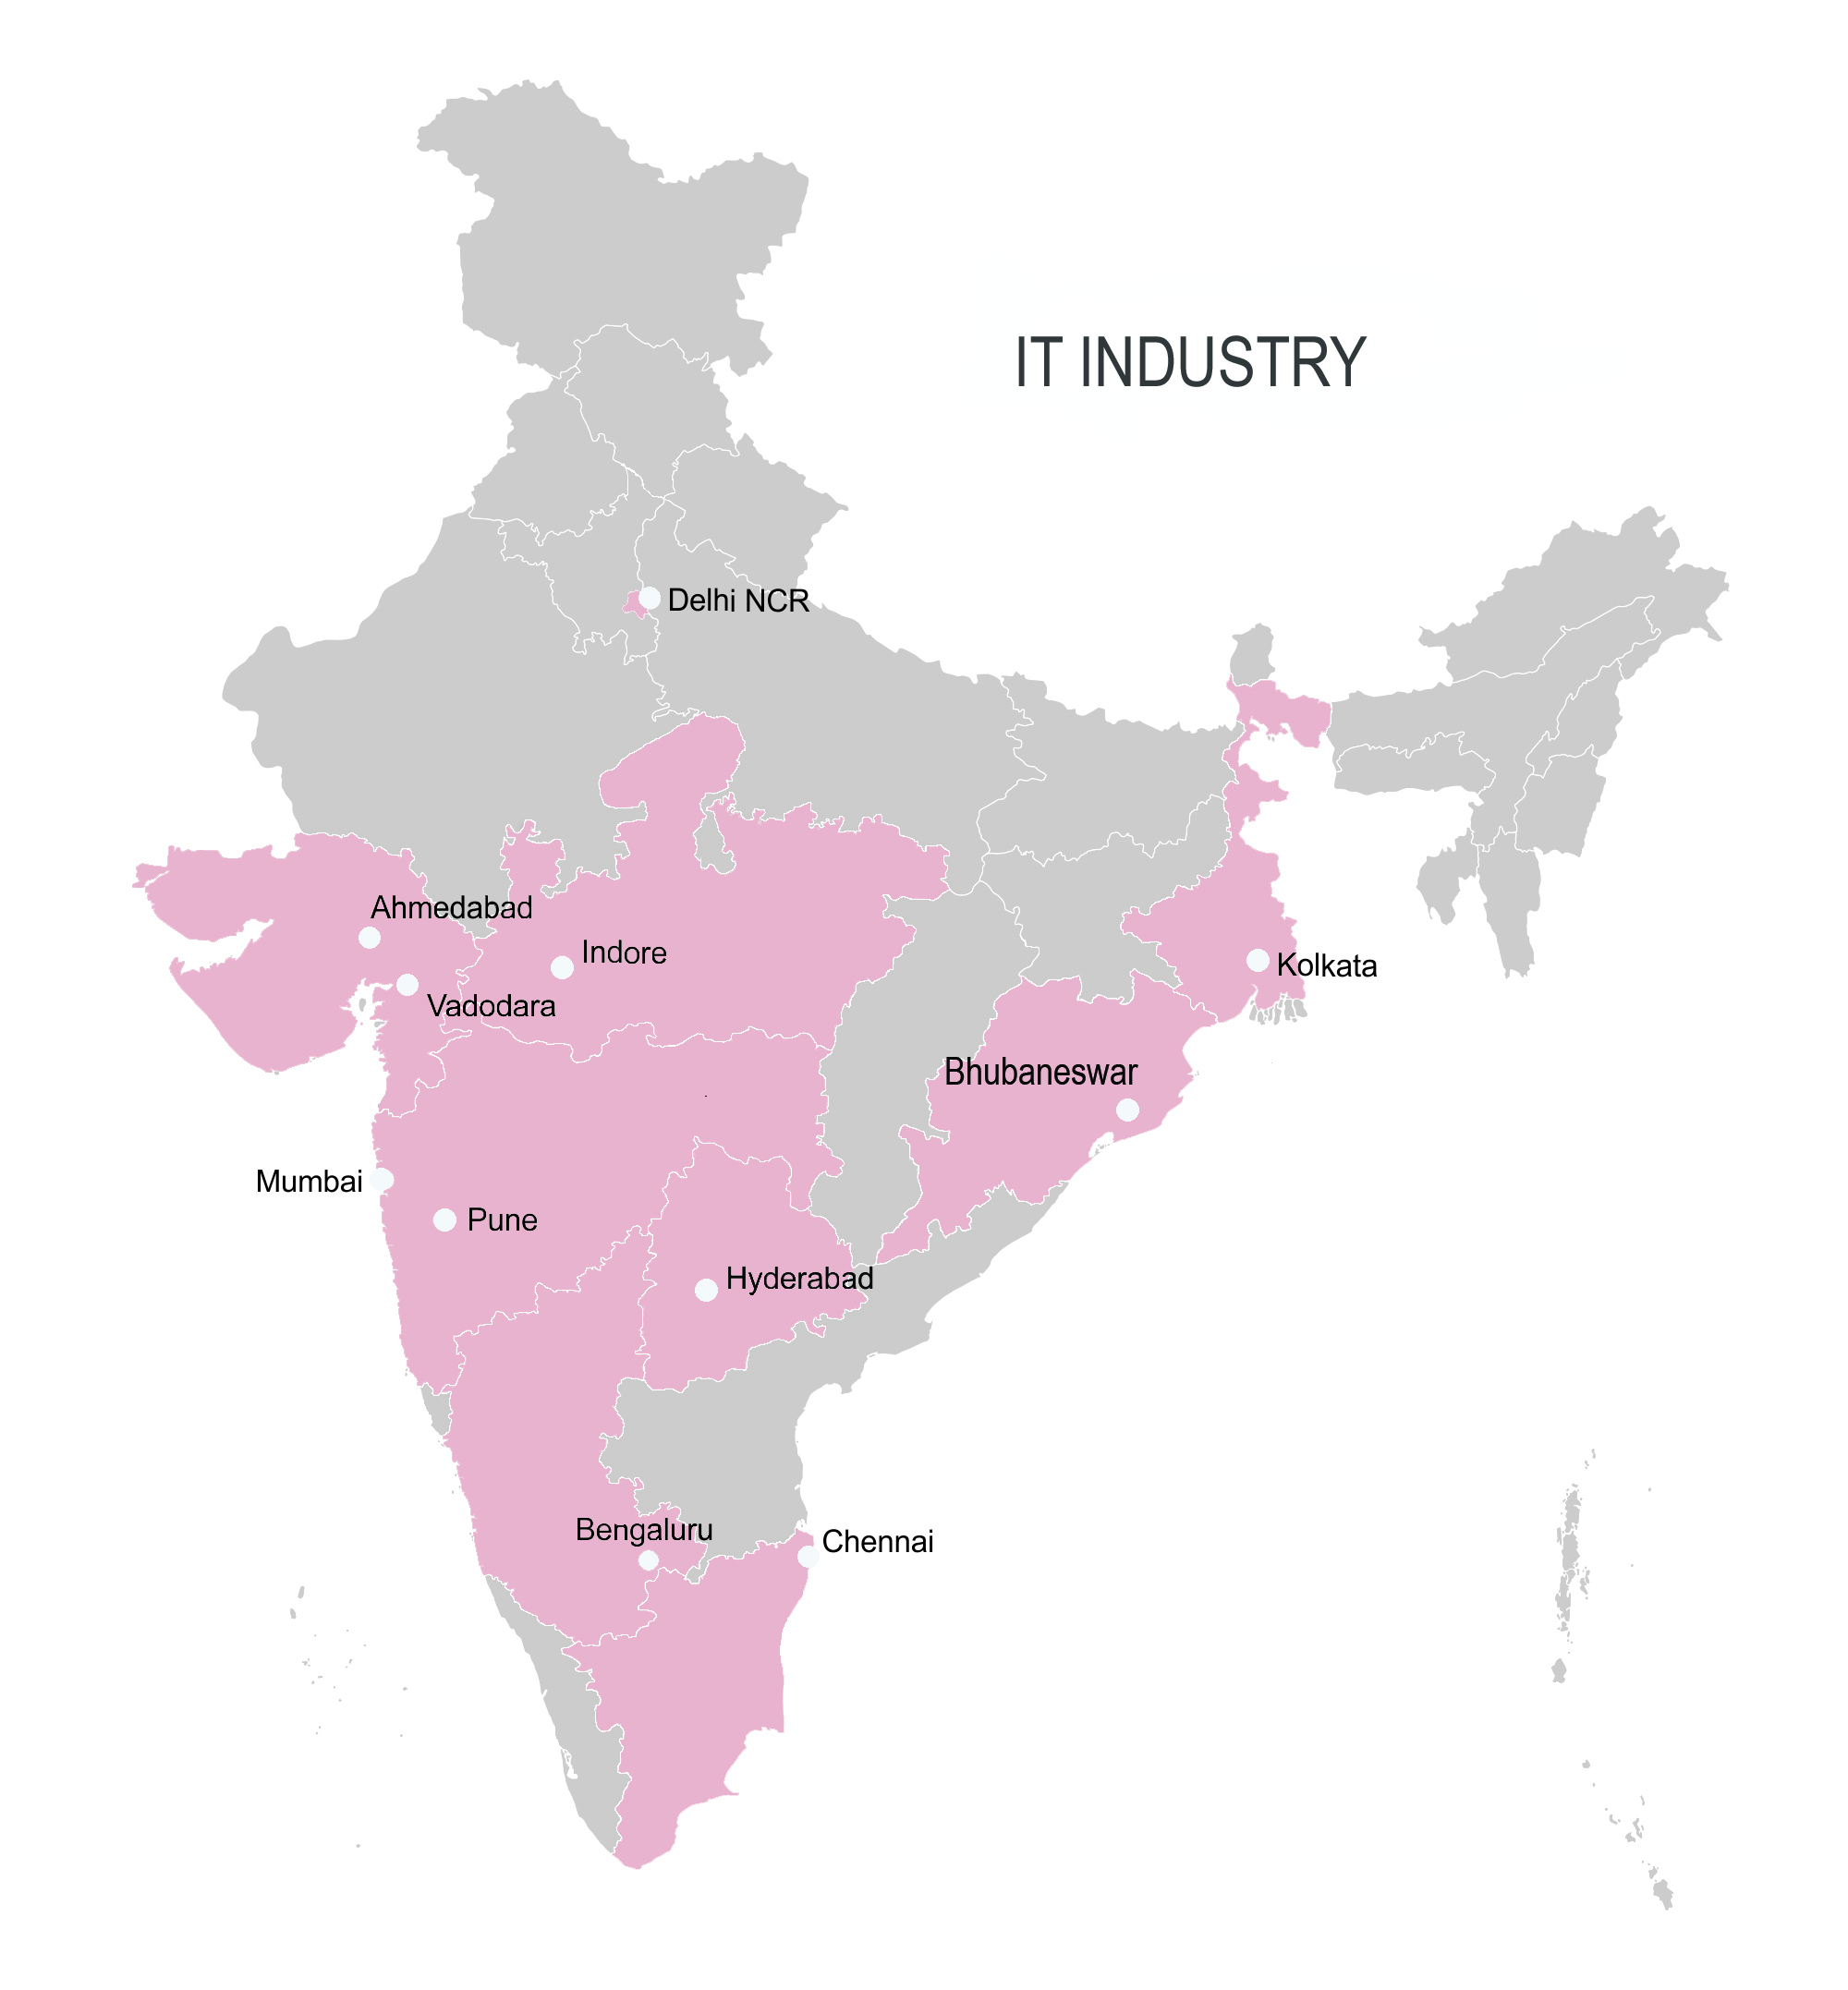 IT Industrie Indien